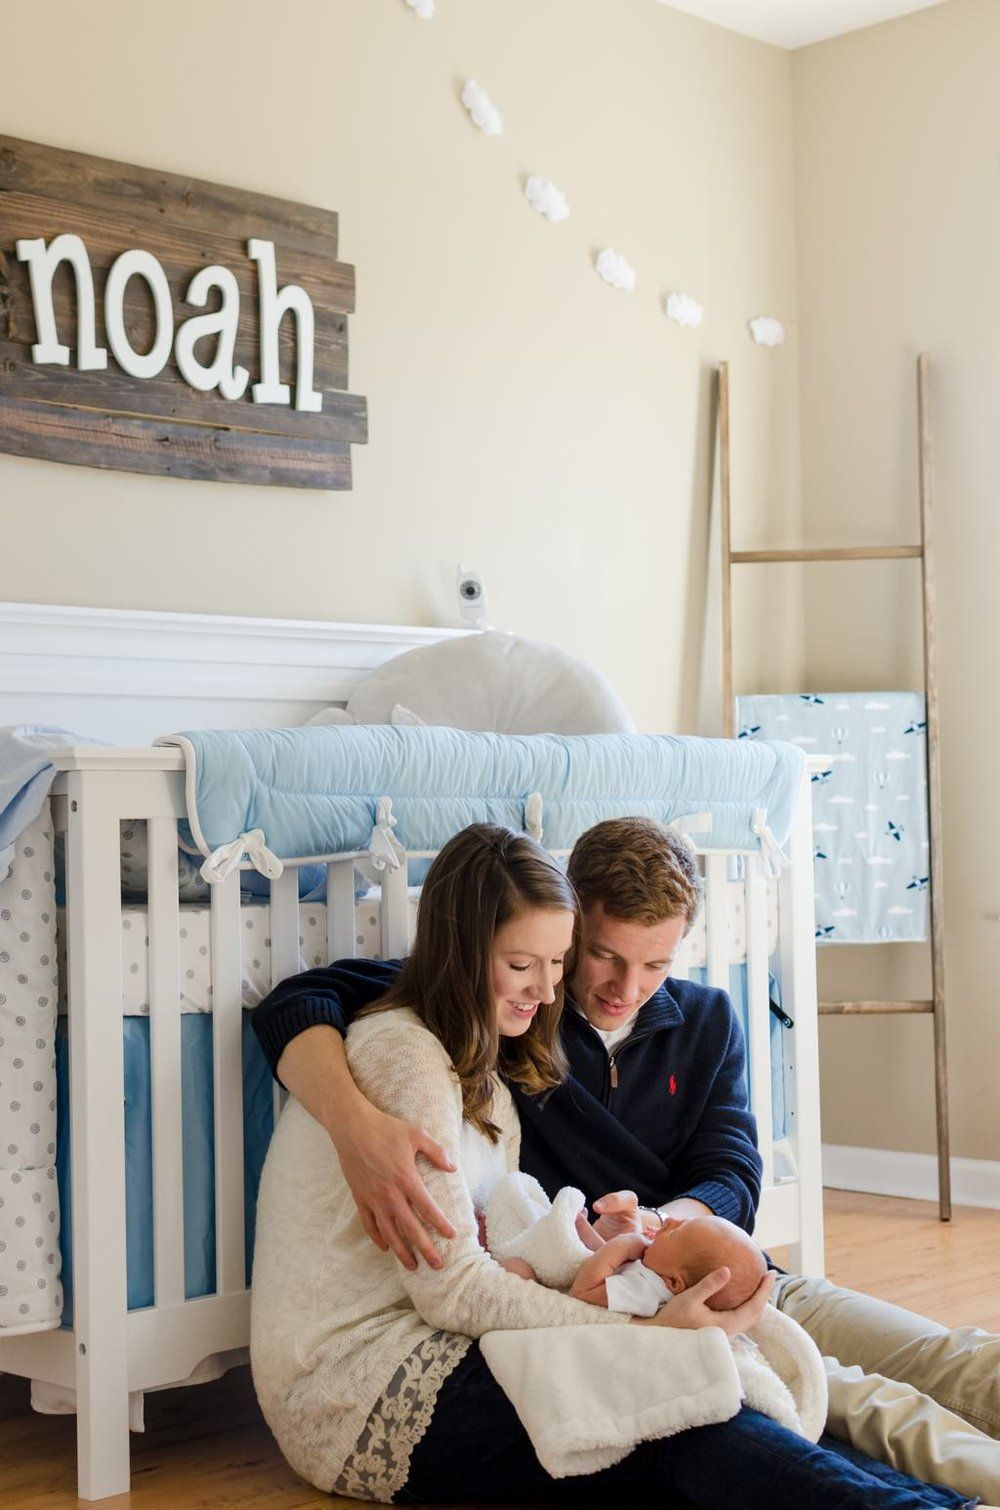 Sweet With Newborn Baby In Nursery During Home Lifestyle Session Murfreesboro Tn